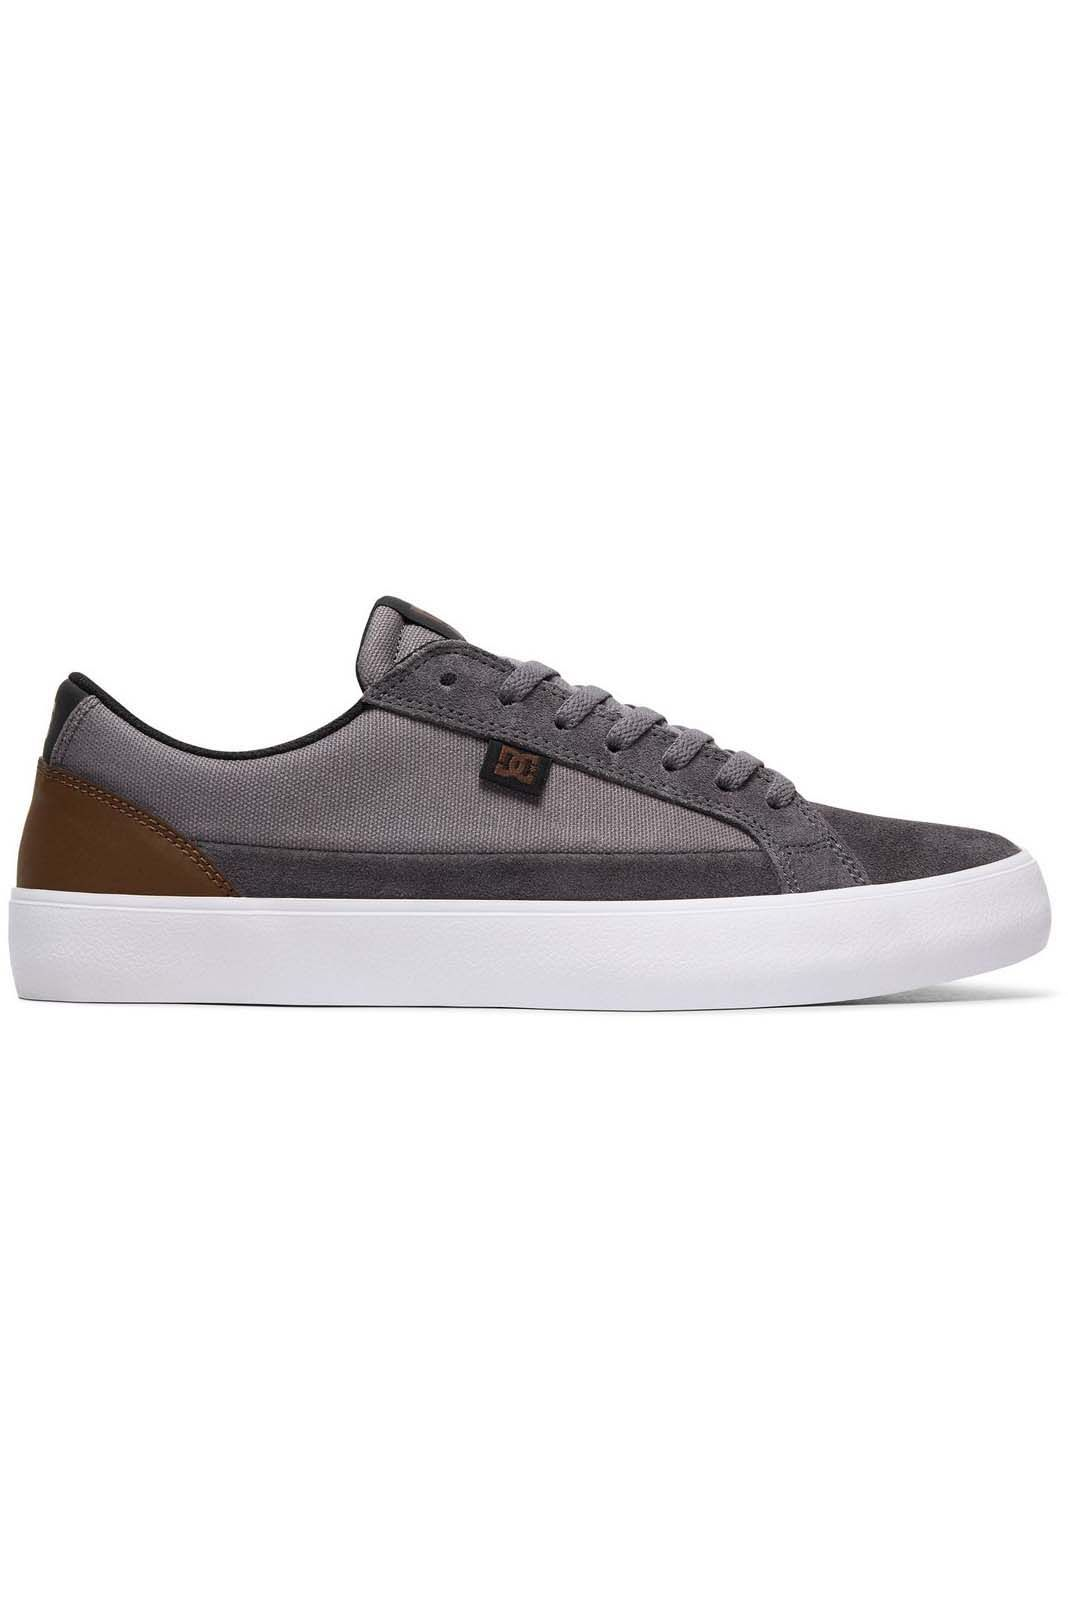 DC Shoes Shoes LYNNFIELD S Grey